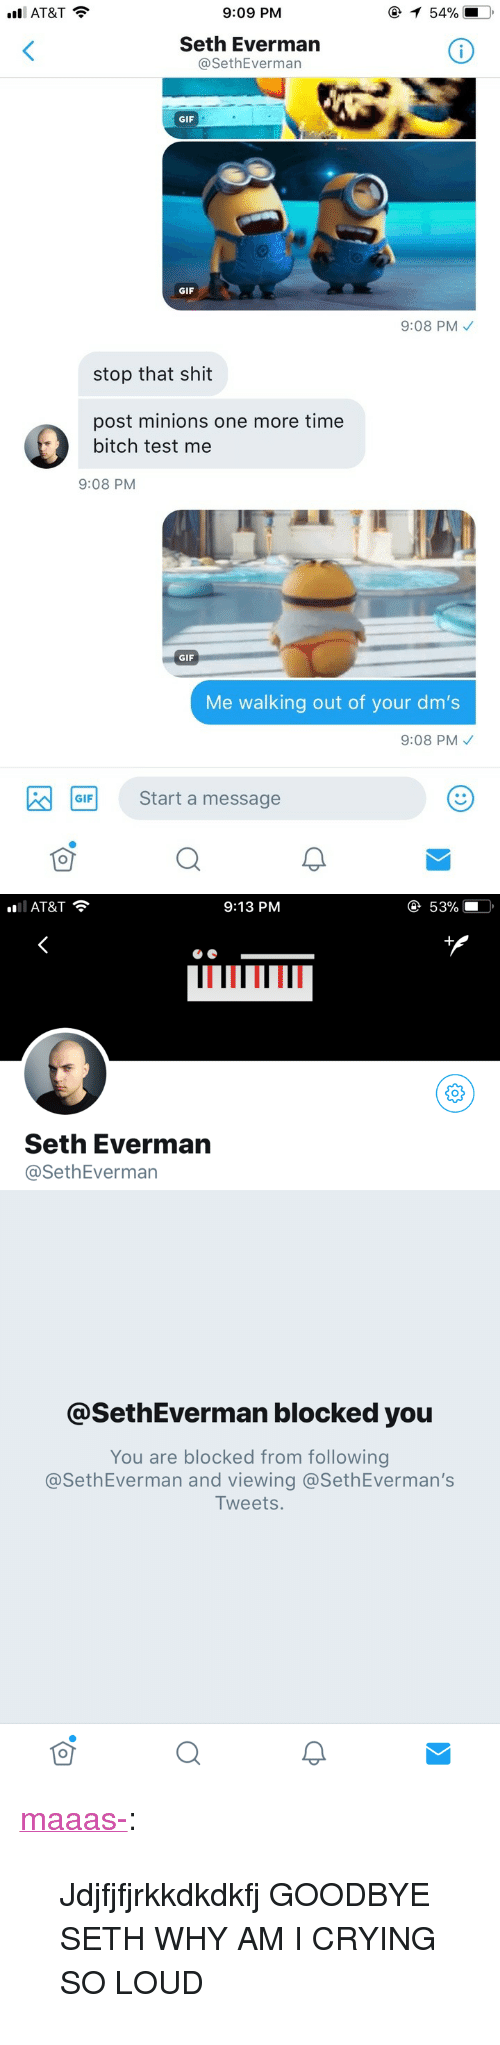 """Bitch, Crying, and Gif: AT&T  9:09 PM  Seth Everman  @SethEverman  GIF  GIF  9:08 PM  stop that shit  post minions one more time  bitch test me  9:08 PM  GIF  Me walking out of your dm's  9:08 PM  GF Start a message   AT&T  9:13 PM  е 53%  Seth Everman  @SethEverman  @SethEverman blocked you  You are blocked from following  @SethEverman and viewing @SethEverman's  Tweets <p><a href=""""https://maaas-.tumblr.com/post/172660552909/jdjfjfjrkkdkdkfj-goodbye-seth-why-am-i-crying-so"""" class=""""tumblr_blog"""">maaas-</a>:</p>  <blockquote><p>Jdjfjfjrkkdkdkfj GOODBYE SETH WHY AM I CRYING SO LOUD</p></blockquote>"""